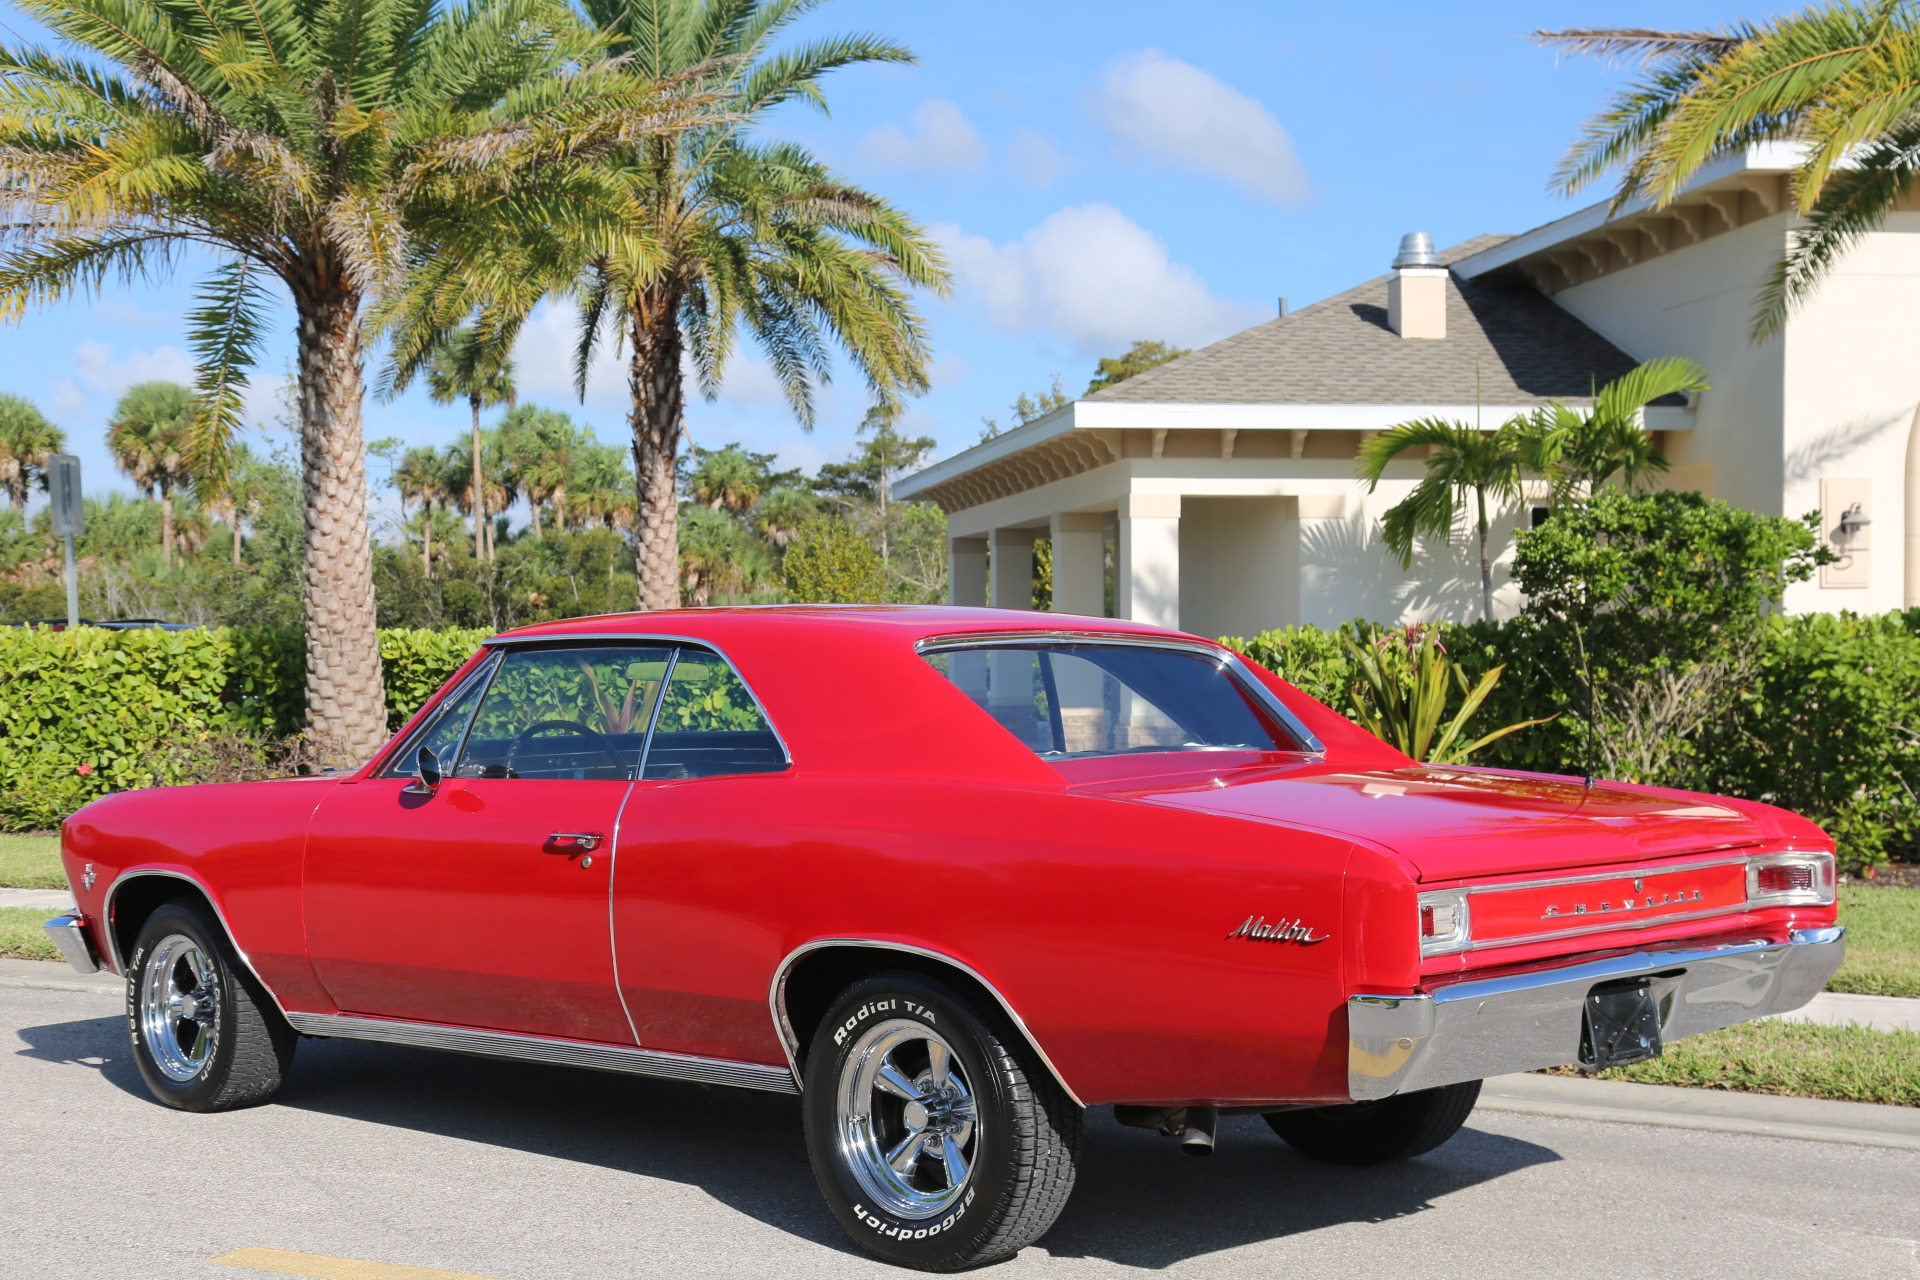 Used 1966 Chevrolet Chevelle Malibu 327 for sale Sold at Muscle Cars for Sale Inc. in Fort Myers FL 33912 8